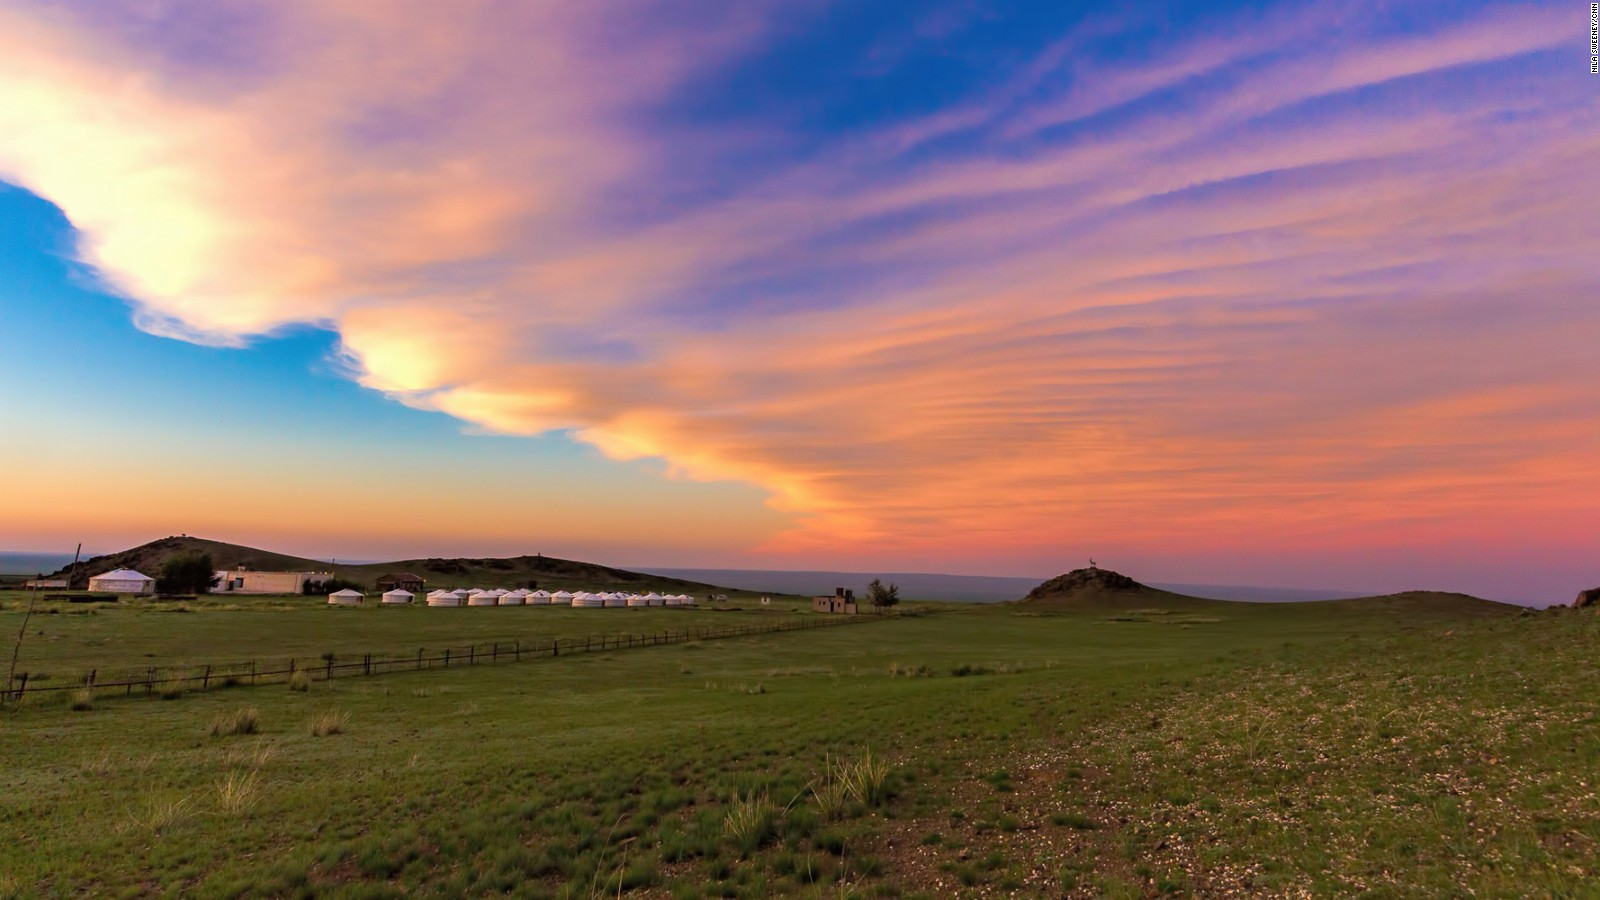 Mongolia photos: 18 of its most stunning places | CNN Travel